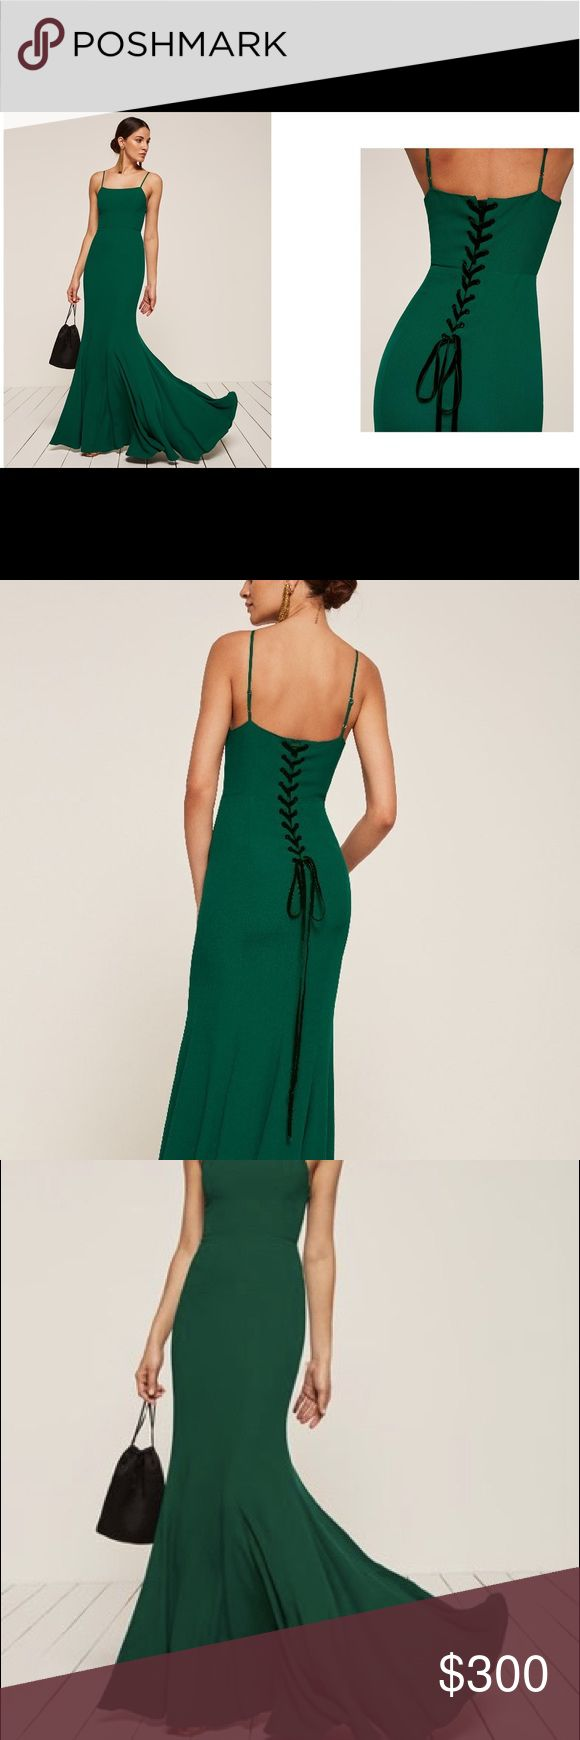 """REFORMATION Dahlia Dress in Emerald Long trumpet skirted dress in a dark green """"Emerald"""" color with lace up in the back. The ribbon in the back is dark green velvet. Size 6, fits true to size. Worn once as a bridesmaids dress. No trades. Reformation Dresses Maxi"""